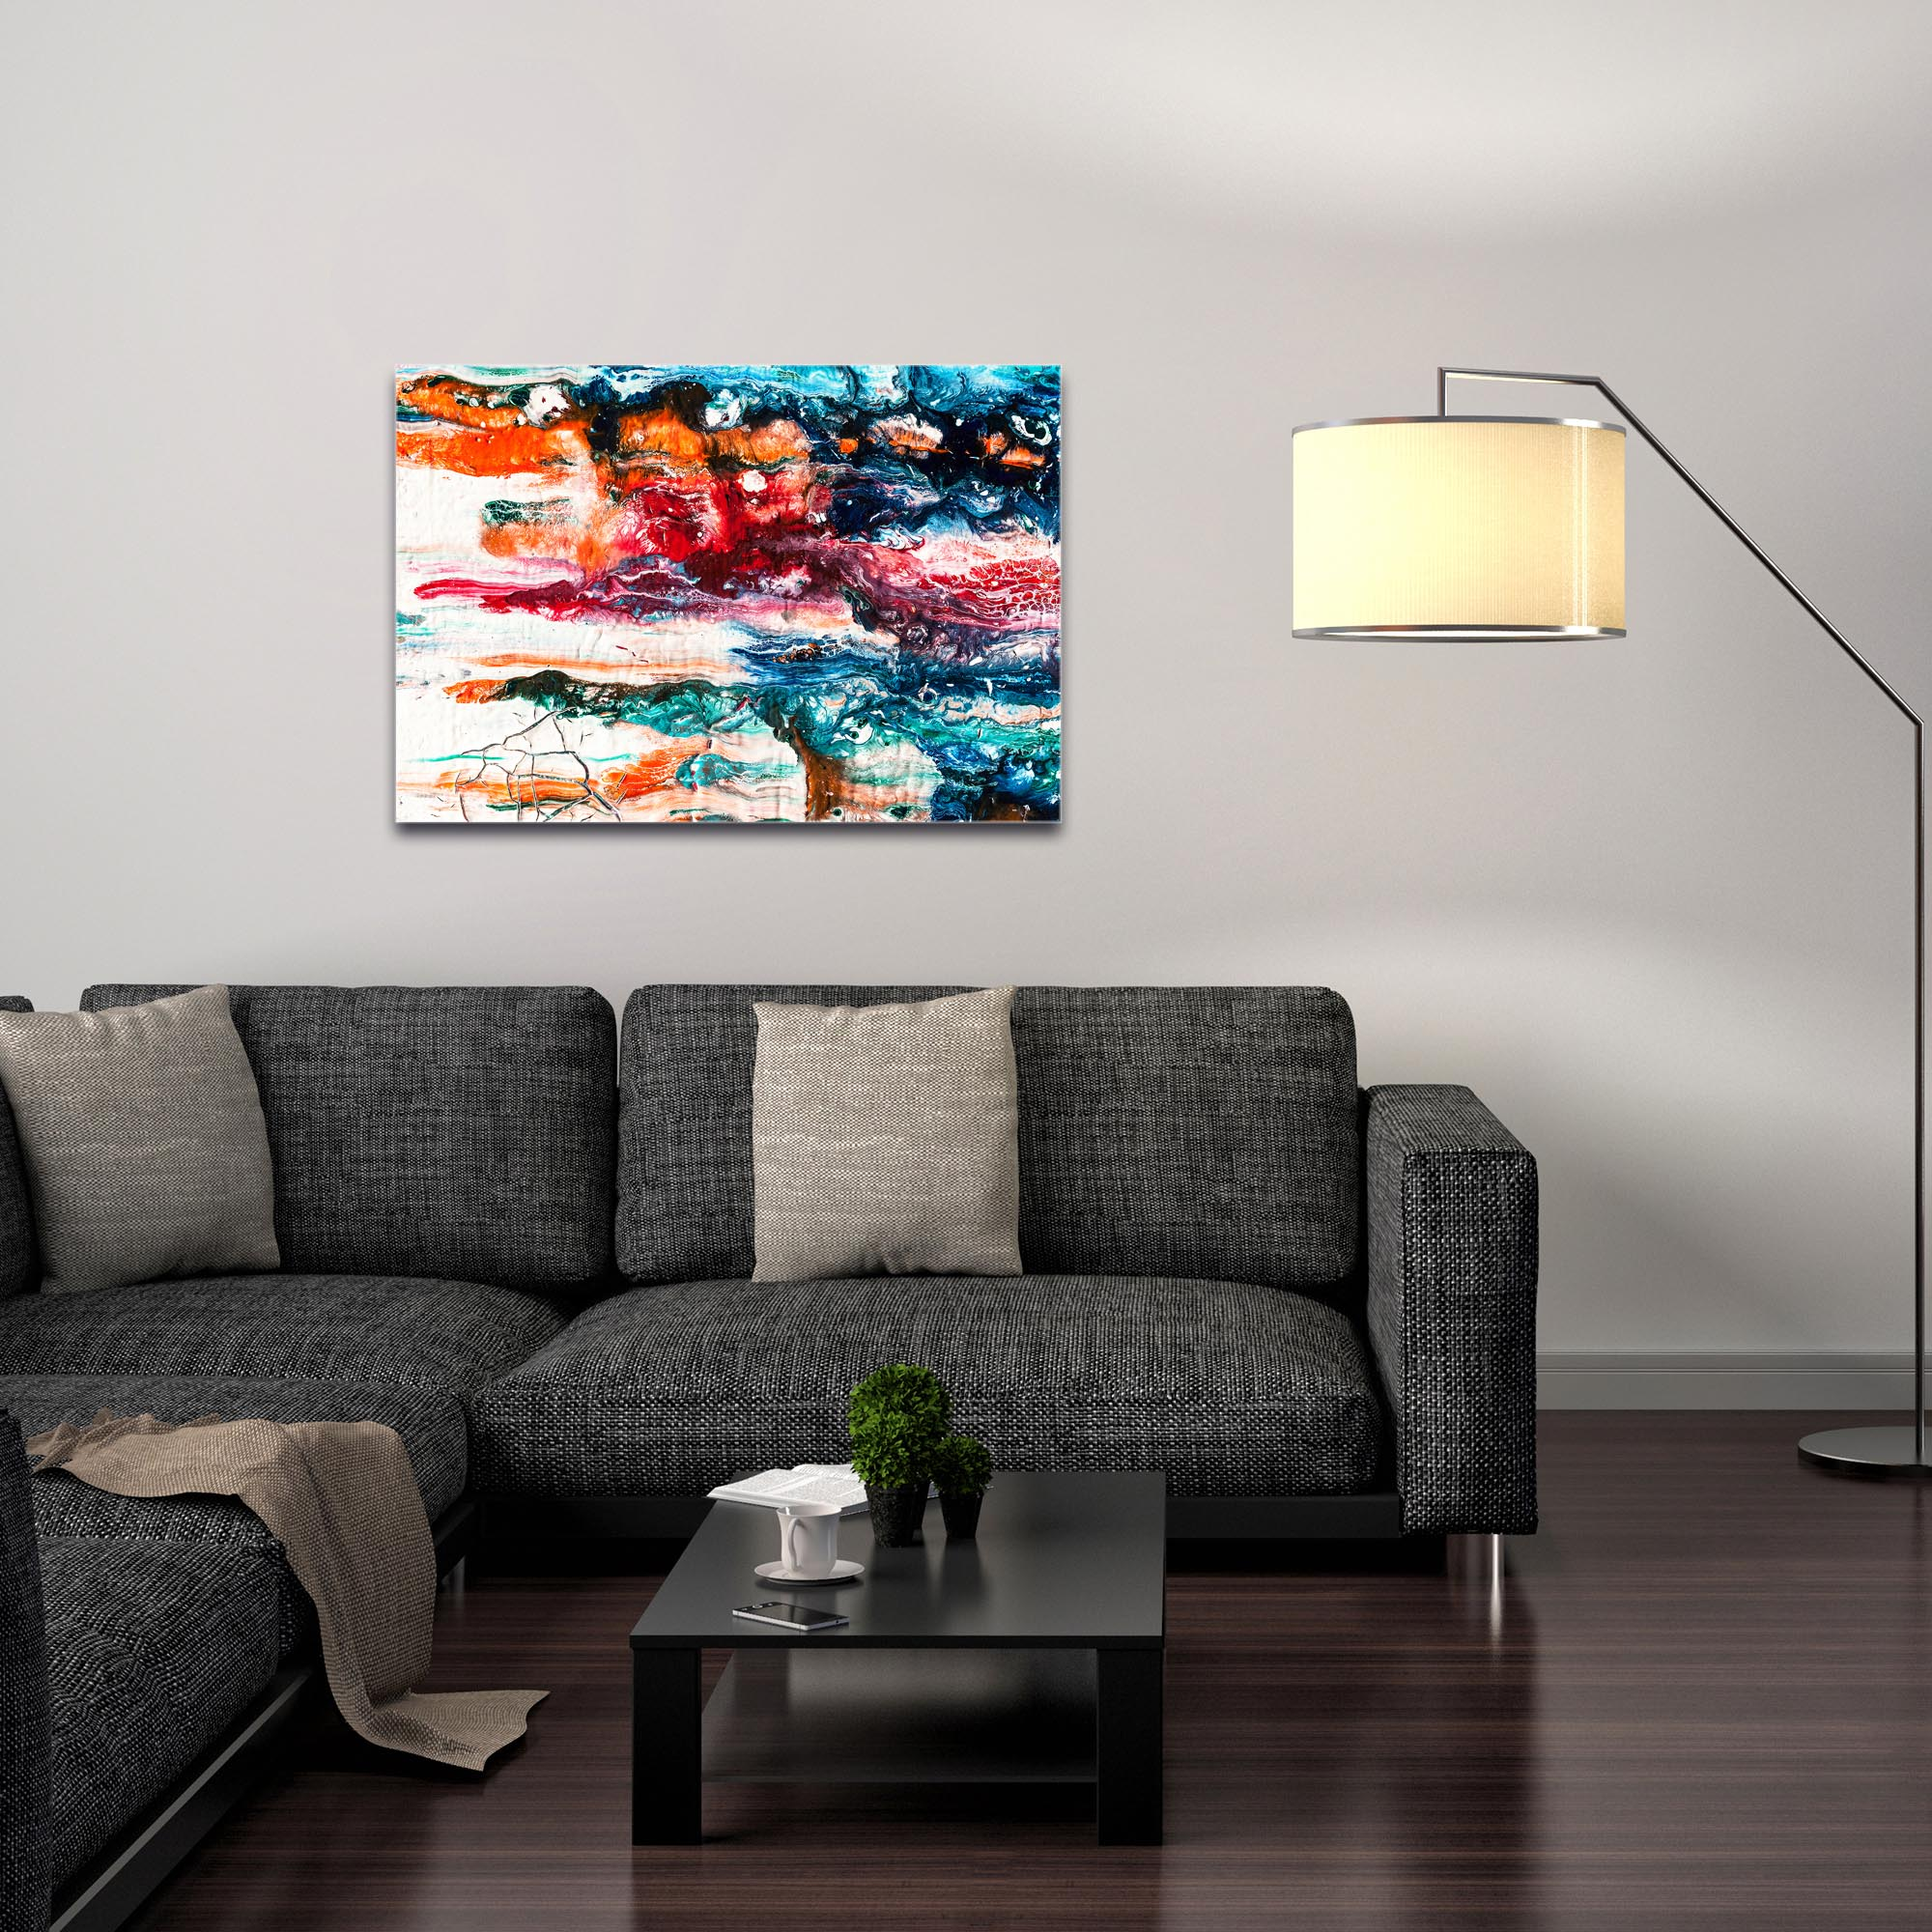 Abstract Wall Art 'Sunset On Her Breath 3' - Colorful Urban Decor on Metal or Plexiglass - Image 3